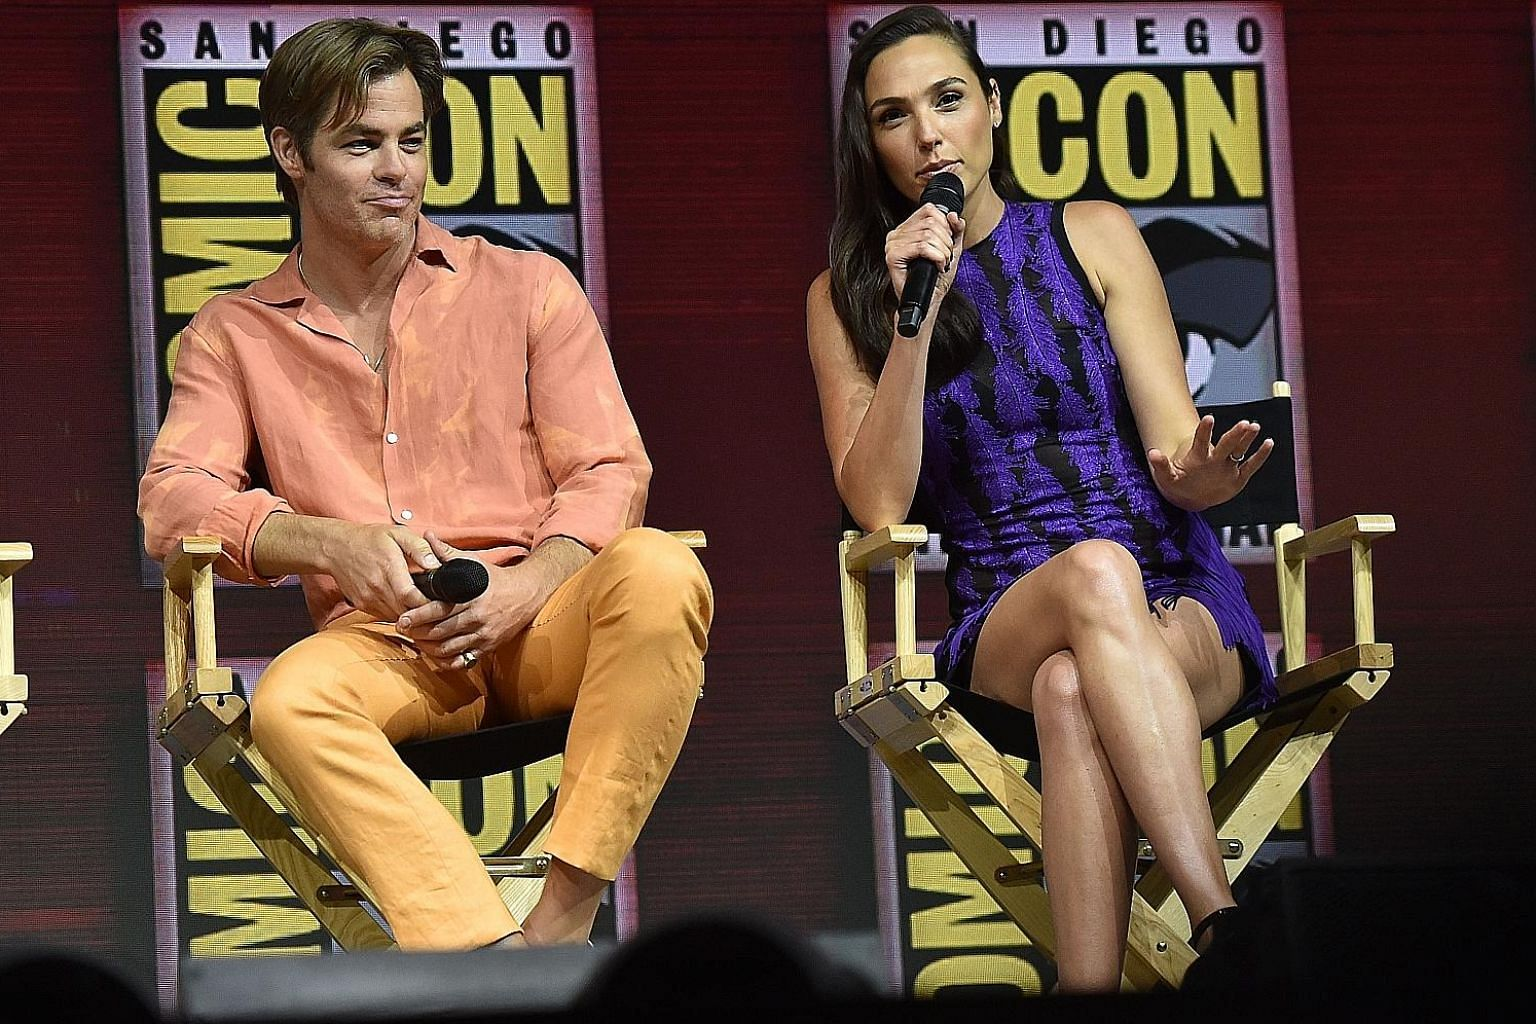 Chris Pine joined Wonder Woman star Gal Gadot to talk about Wonder Woman 1984, which began filming three weeks ago. Johnny Depp appeared as the pale and dishevelled villain Grindelwald of Fantastic Beasts: The Crimes Of Grindelwald at San Diego Comic